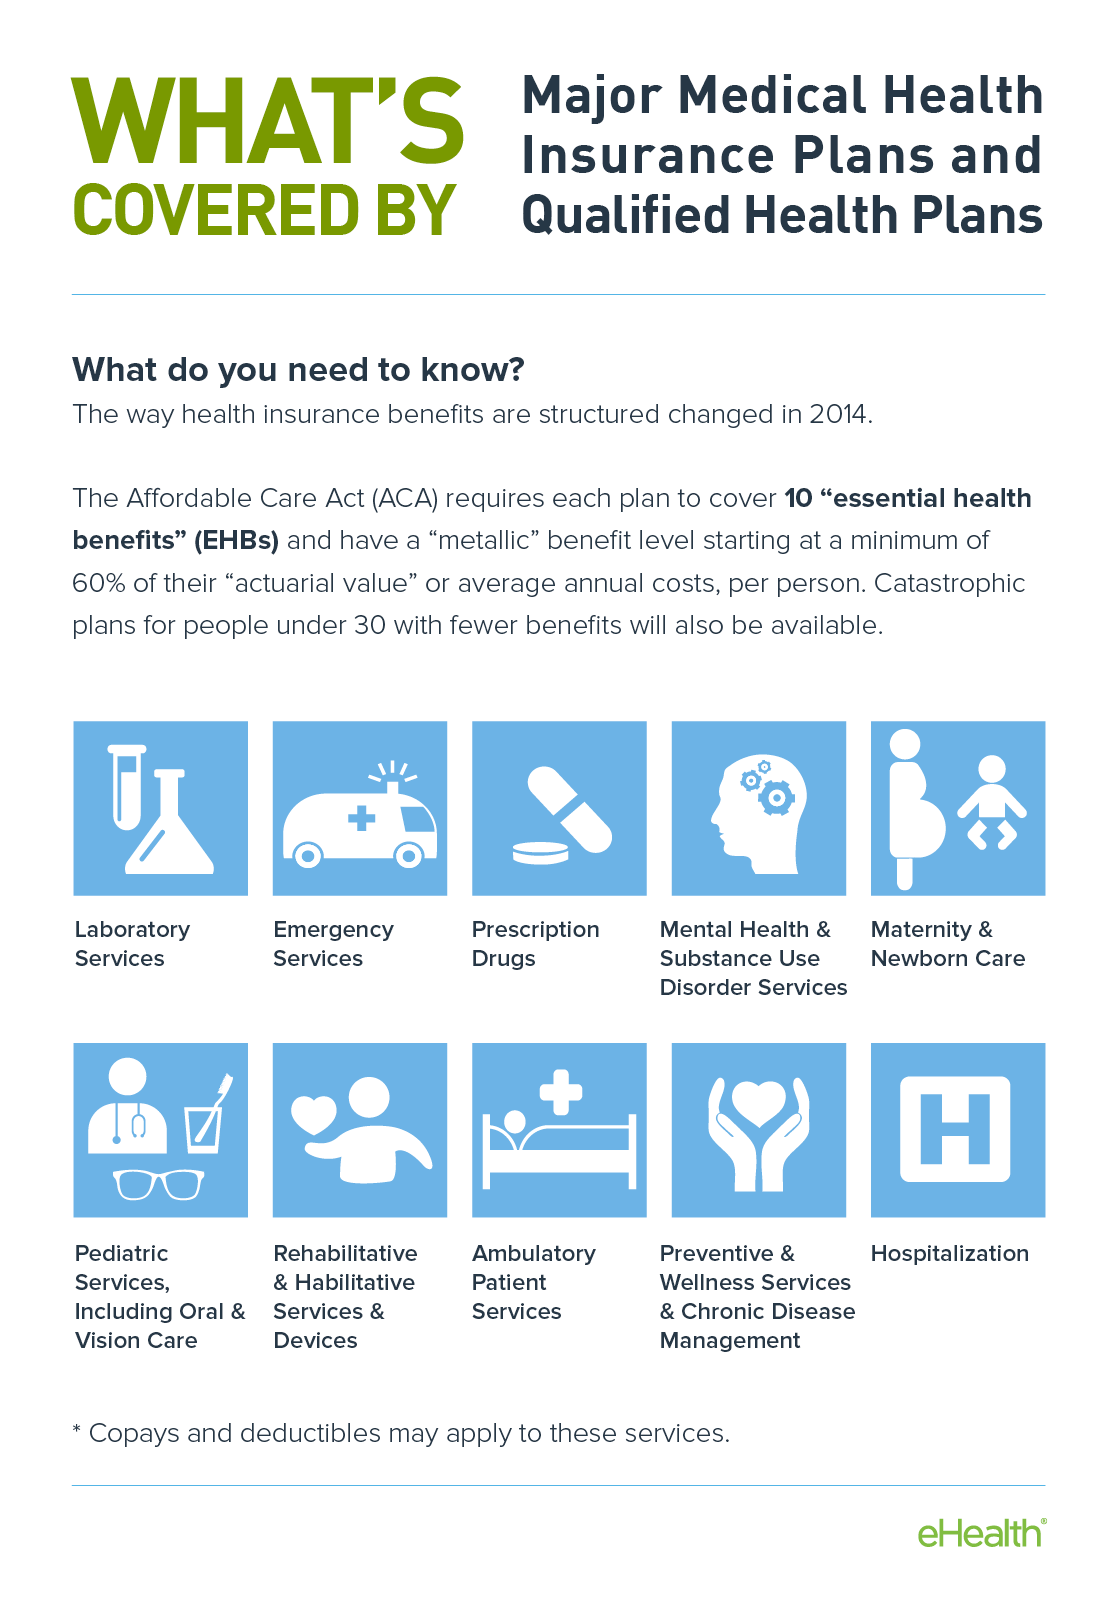 What's covered by Qualified Health Plans